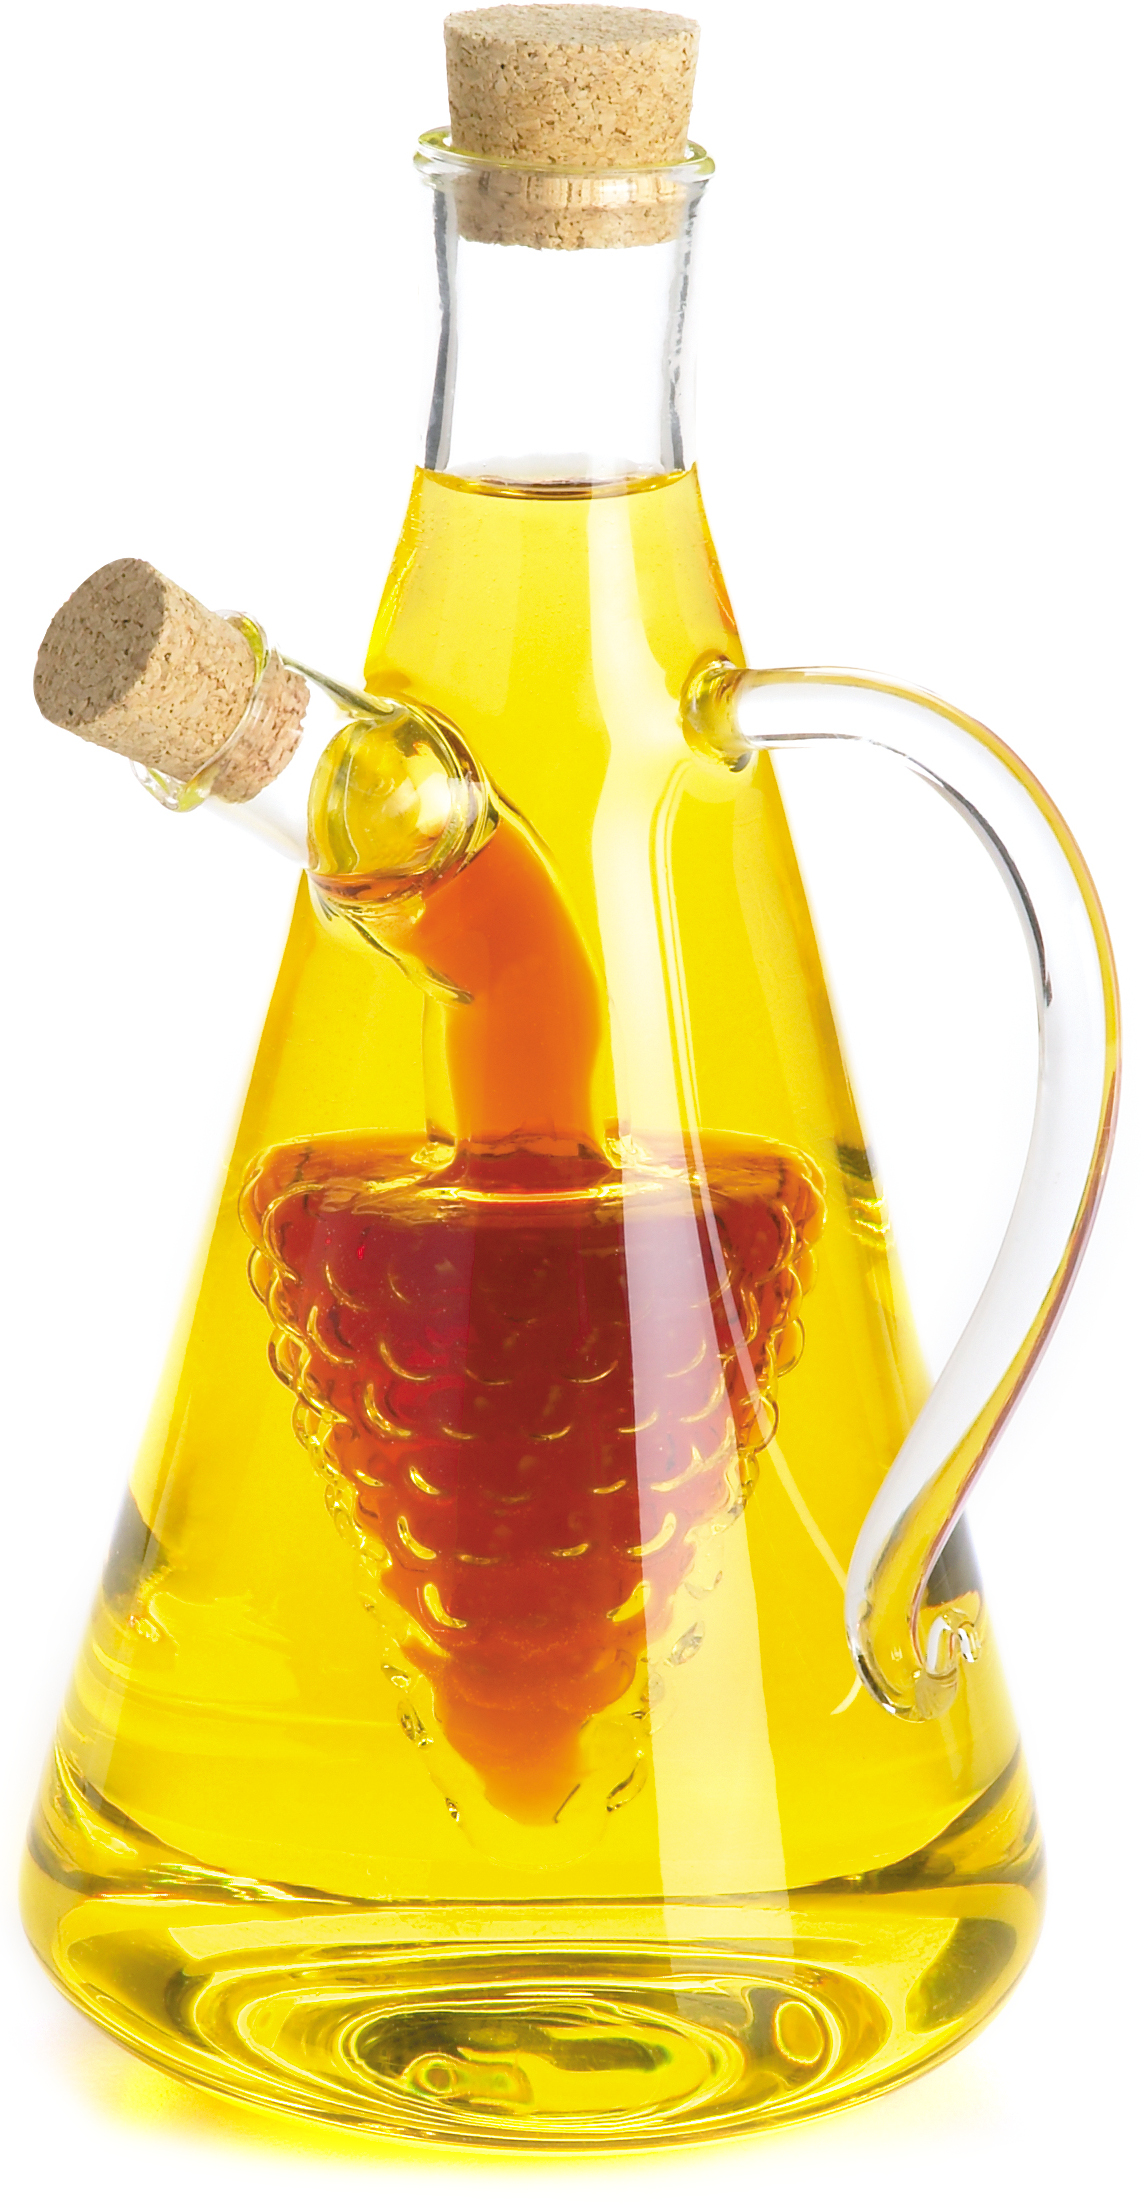 Fox Run 2-in-1 Glass Grapes Oil and Vinegar Bottle with Handle, 7 Inch